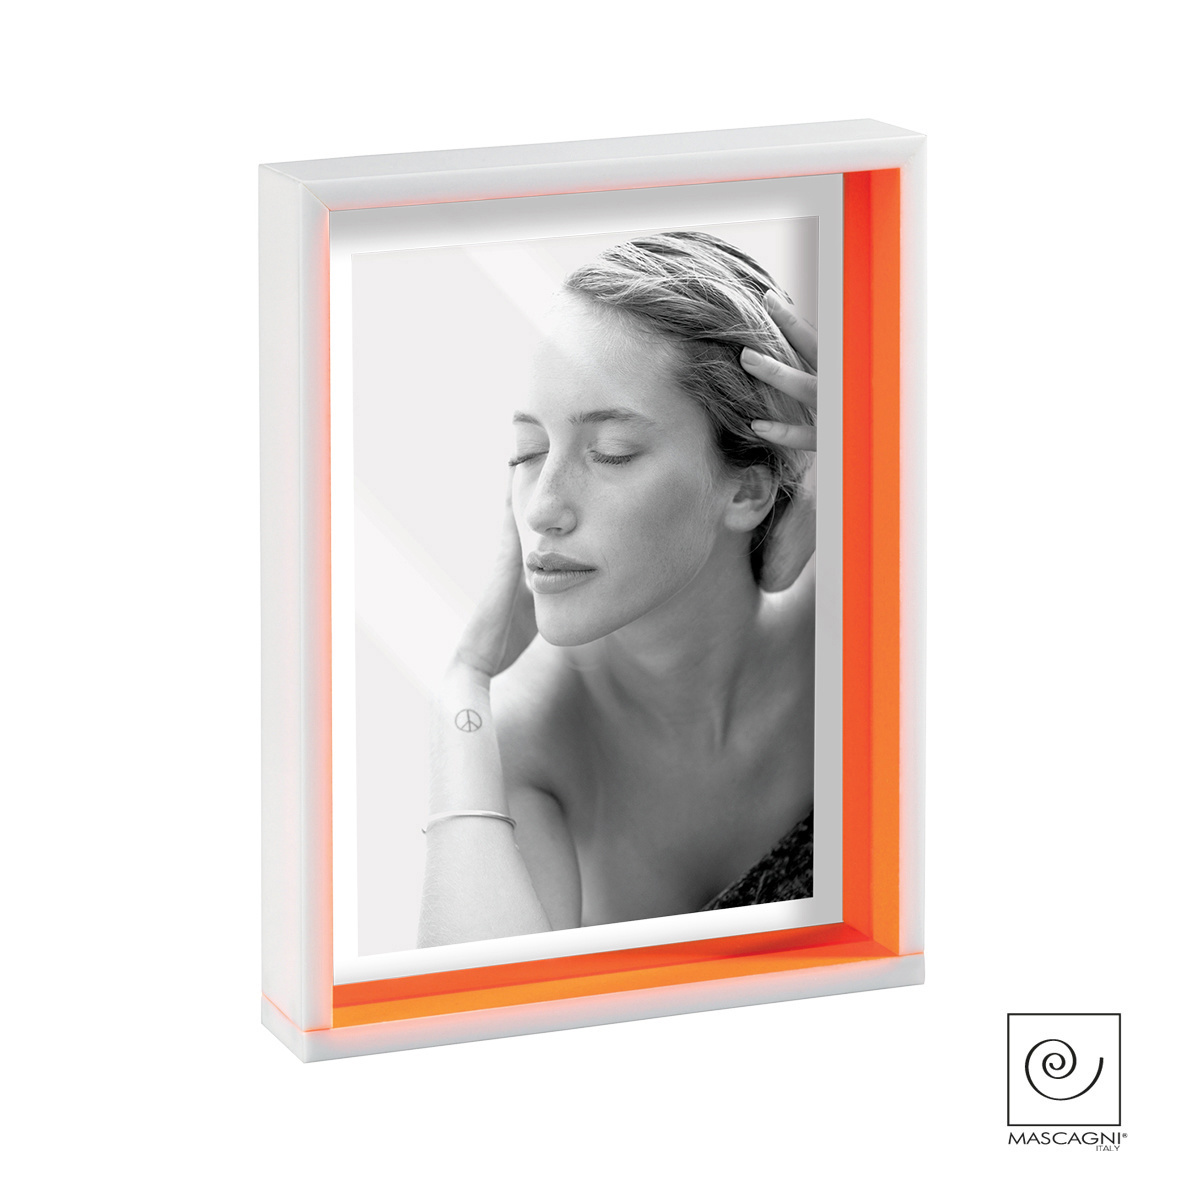 Art Mascagni A662 PHOTO FRAME 13X18 - COL. ORANGE